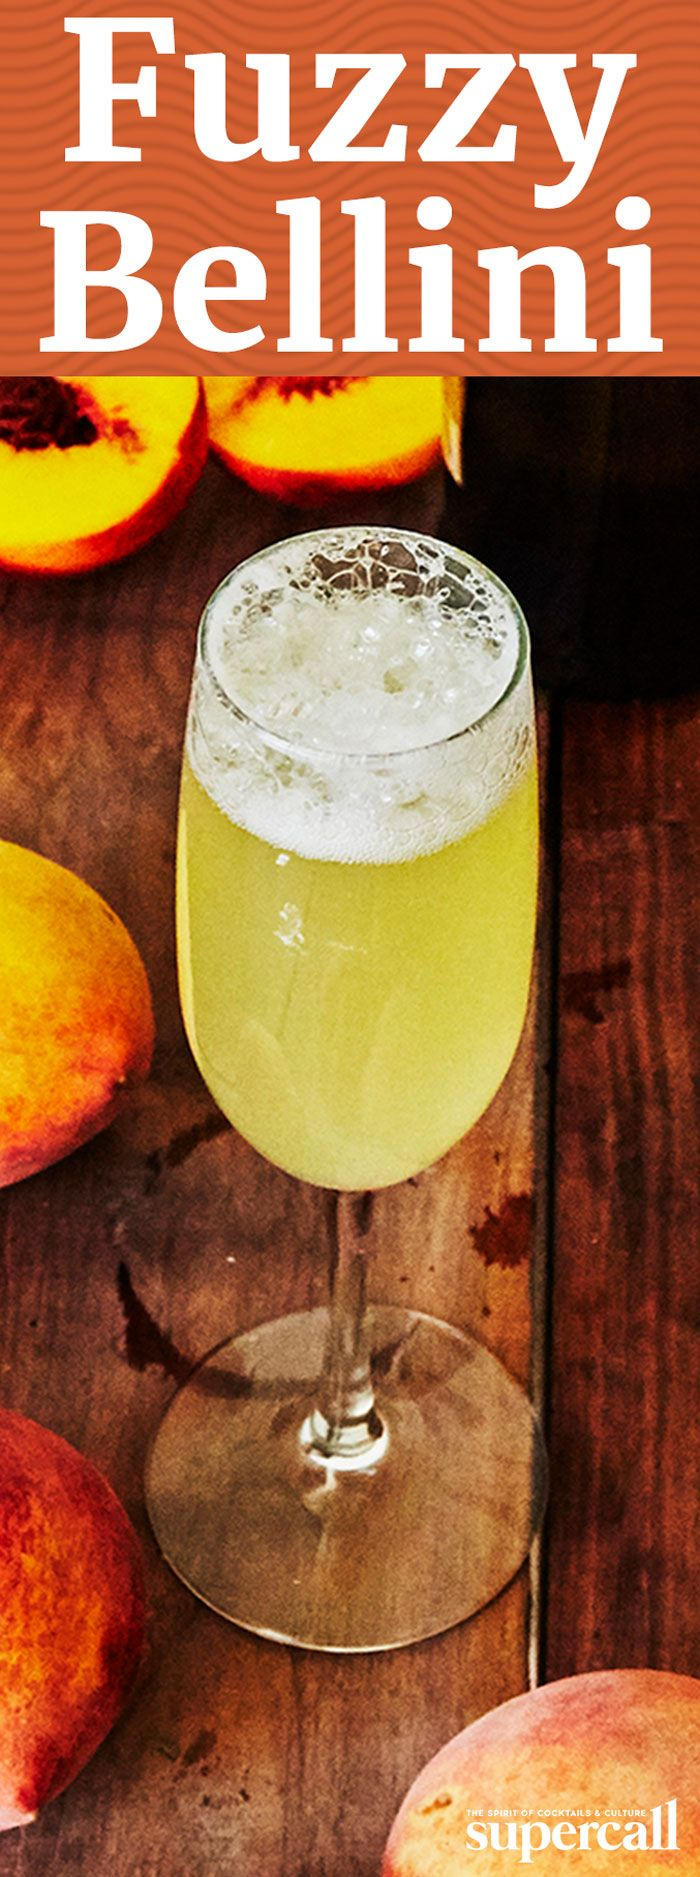 Inspired by the drink, this fuzzy Bellini, mixes orgeat and almond milk syrup, with peach liqueur and orange bitters. Somewhere between a Mimosa, a Fuzzy Navel and a tiki drink without the bite, this brunch concoction sets a new standard for midday cocktails.